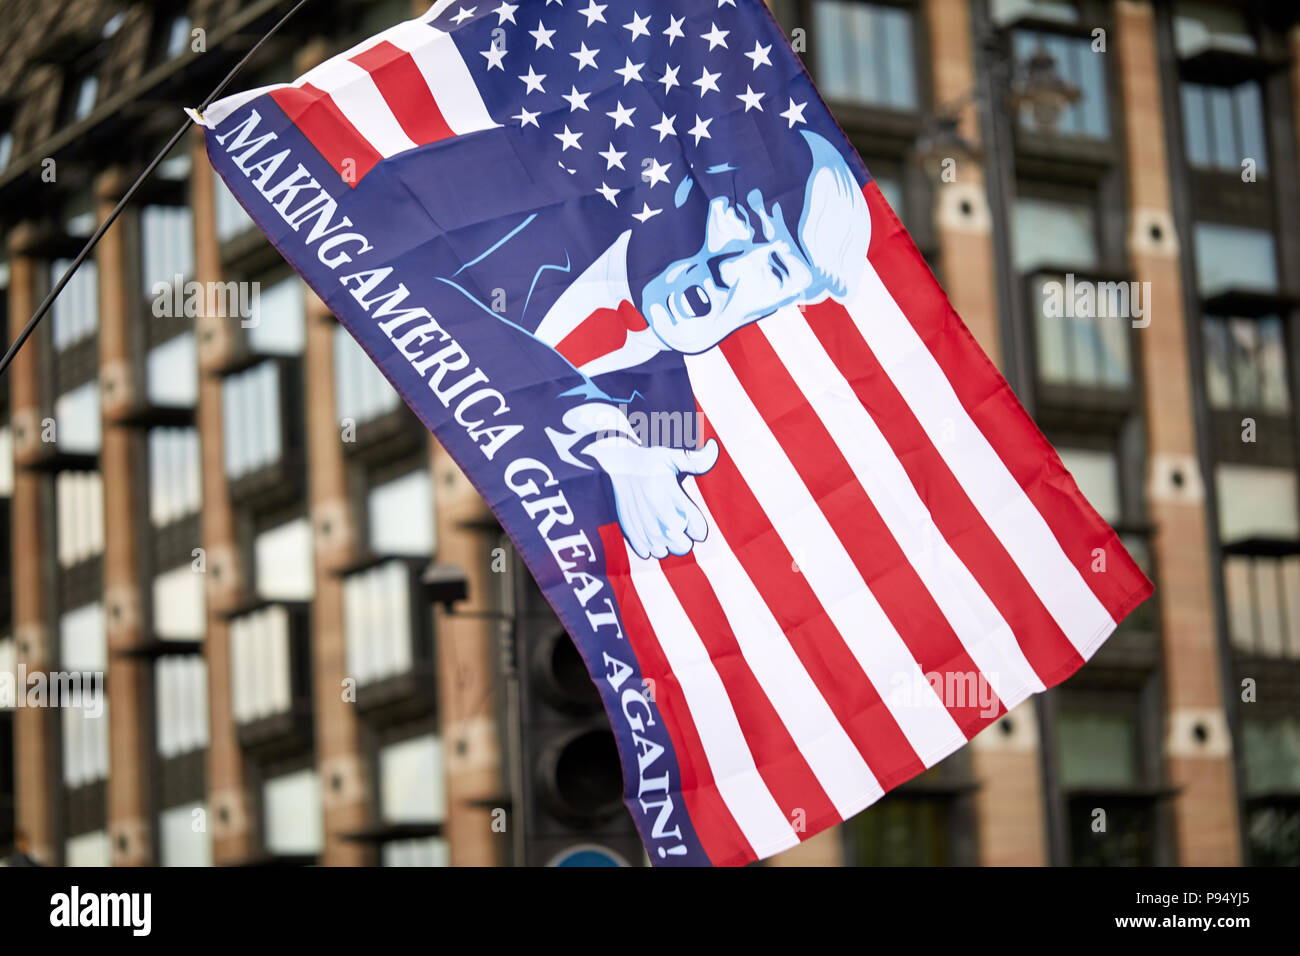 London, U.K. - 14 July 2018: A 'Making America Great Again' flies in front of Portcullis House, Westminster during a Pro-Donald Trump rally and march. Stock Photo